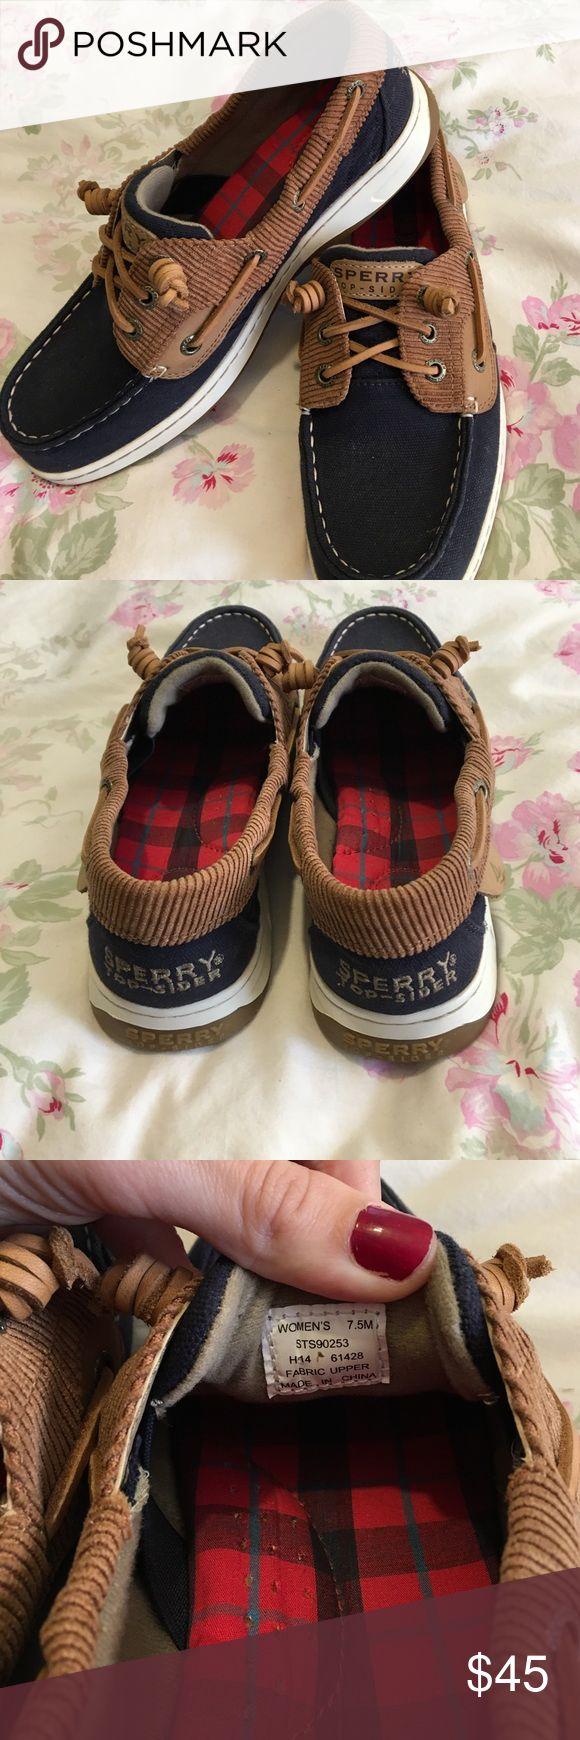 Blue Sperry Top-Siders NWOT Blue canvas Sperry top-sider shoes. These are a size 7.5. Super cute shoes that need a home where they will be loved🙂❤️ Sperry Top-Sider Shoes Flats & Loafers